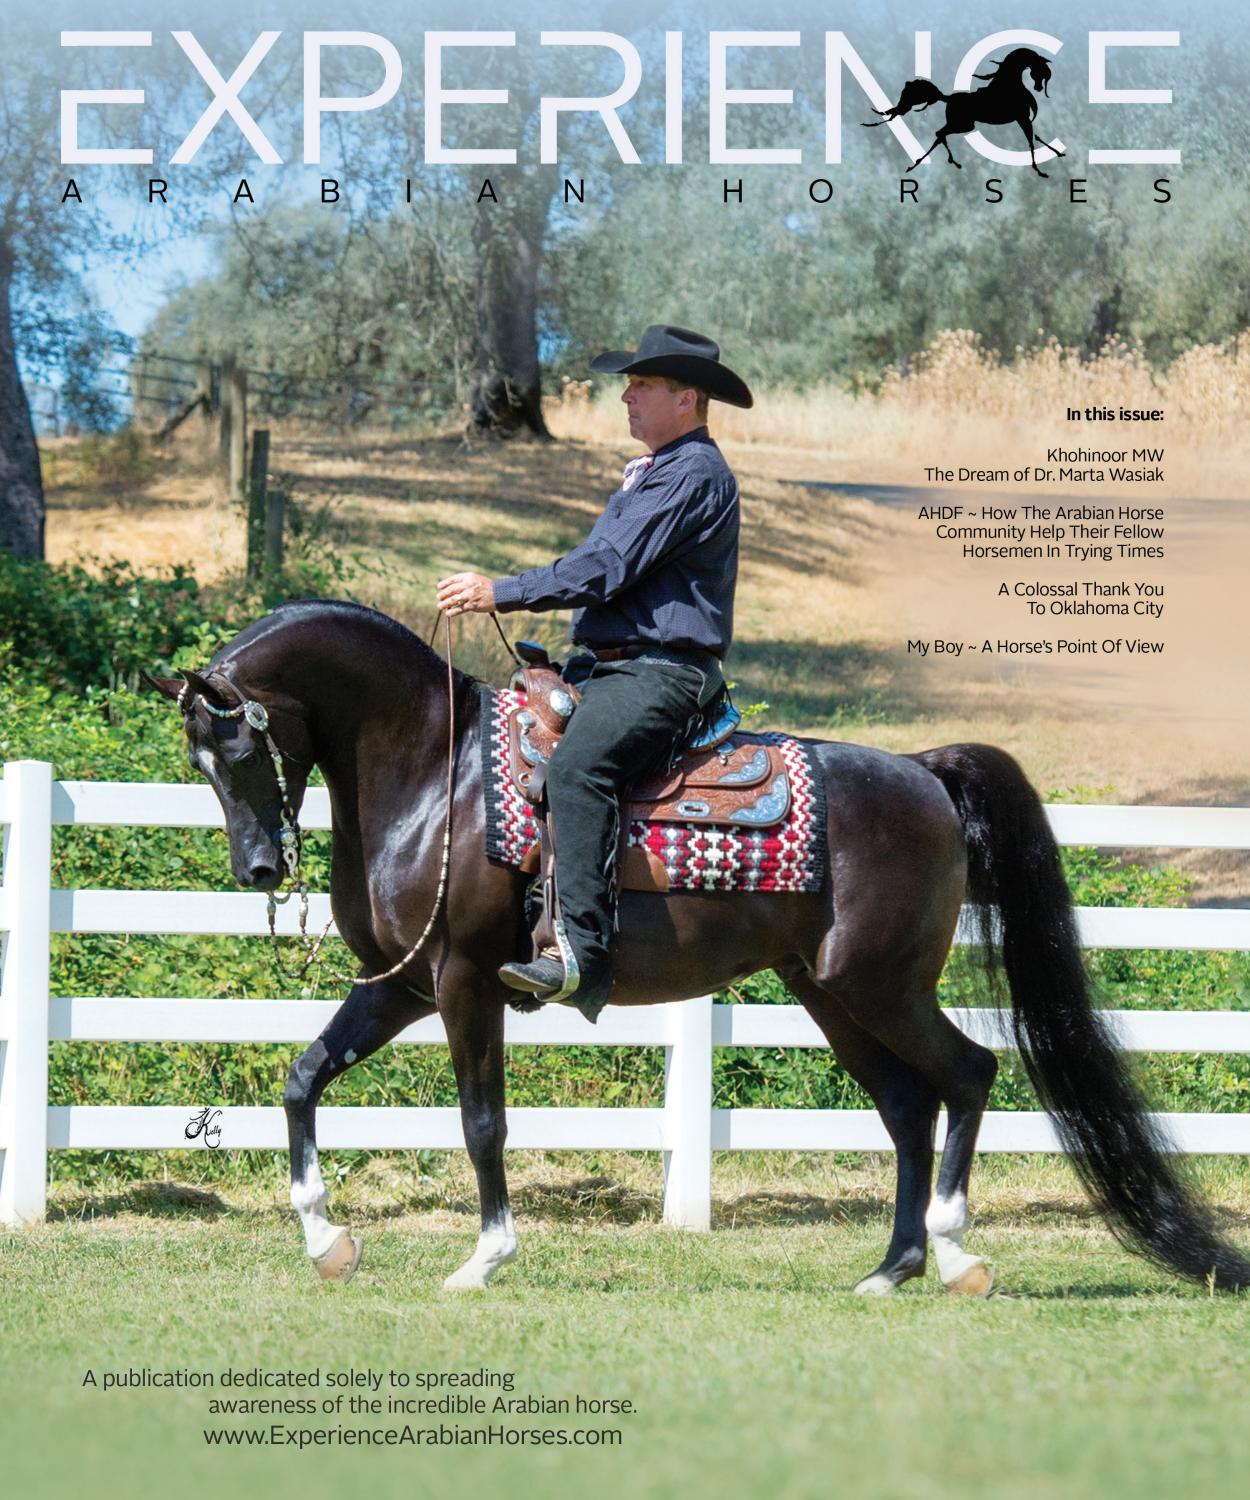 Experience Arabian Horses Issue 10 Published With Arabian Horse Times By Arabian Horse Times Issuu